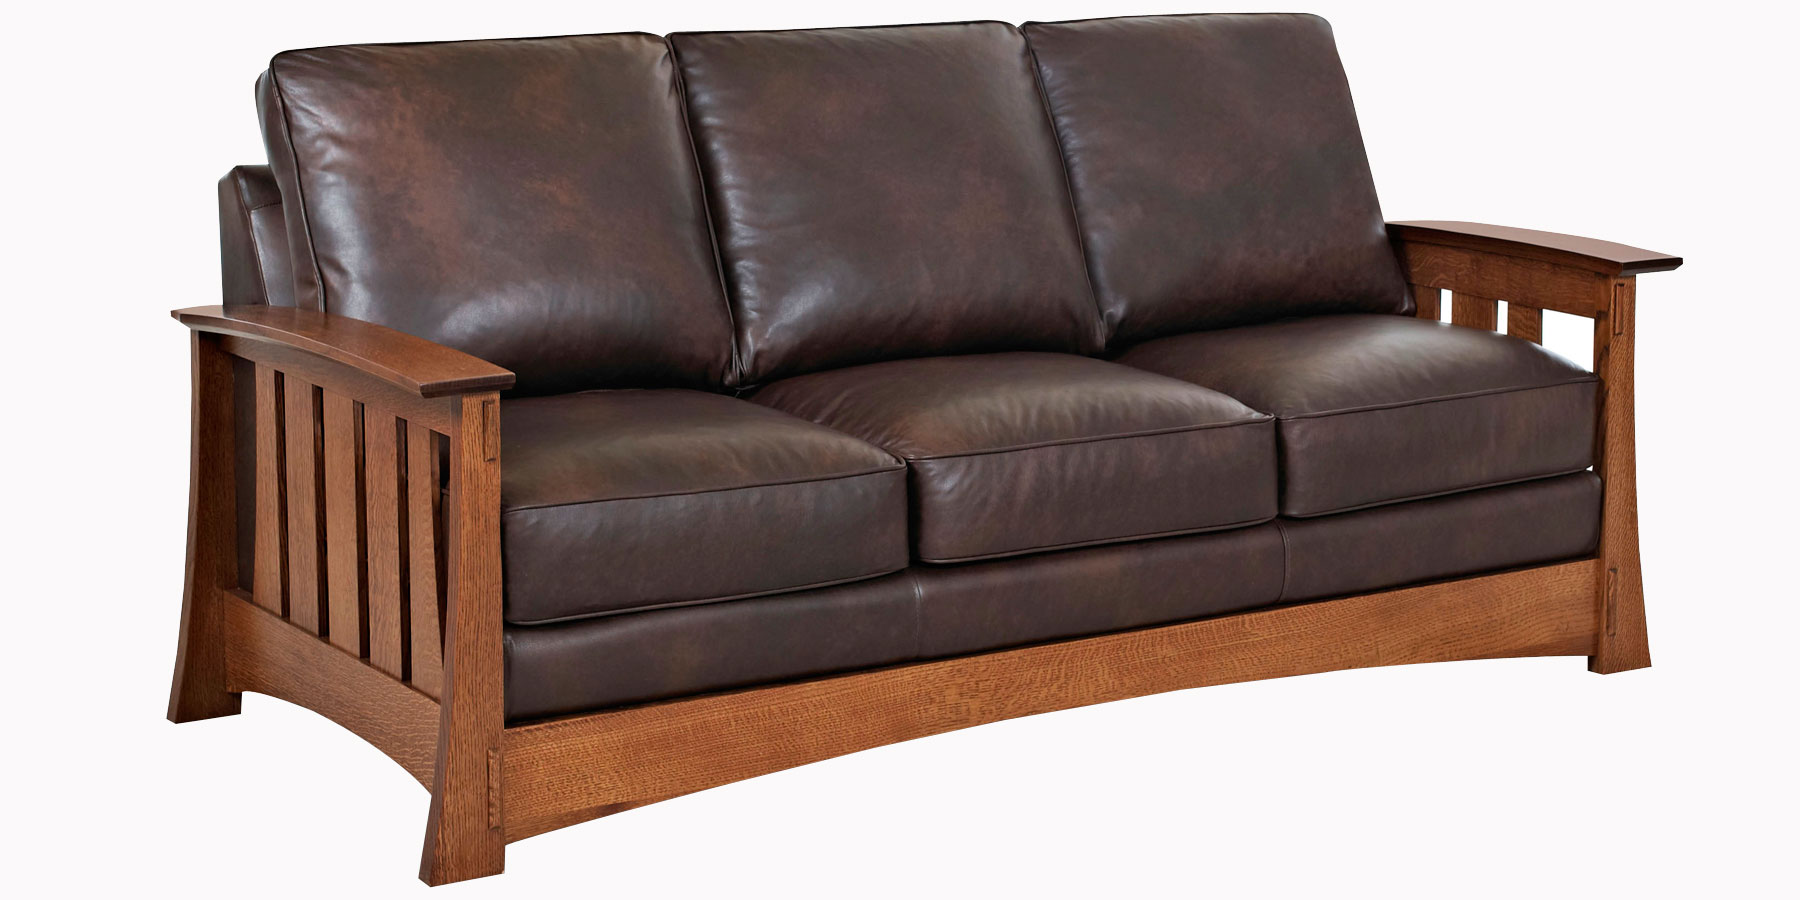 Mission Style Leather Furniture | Mission Leather Living Room Set